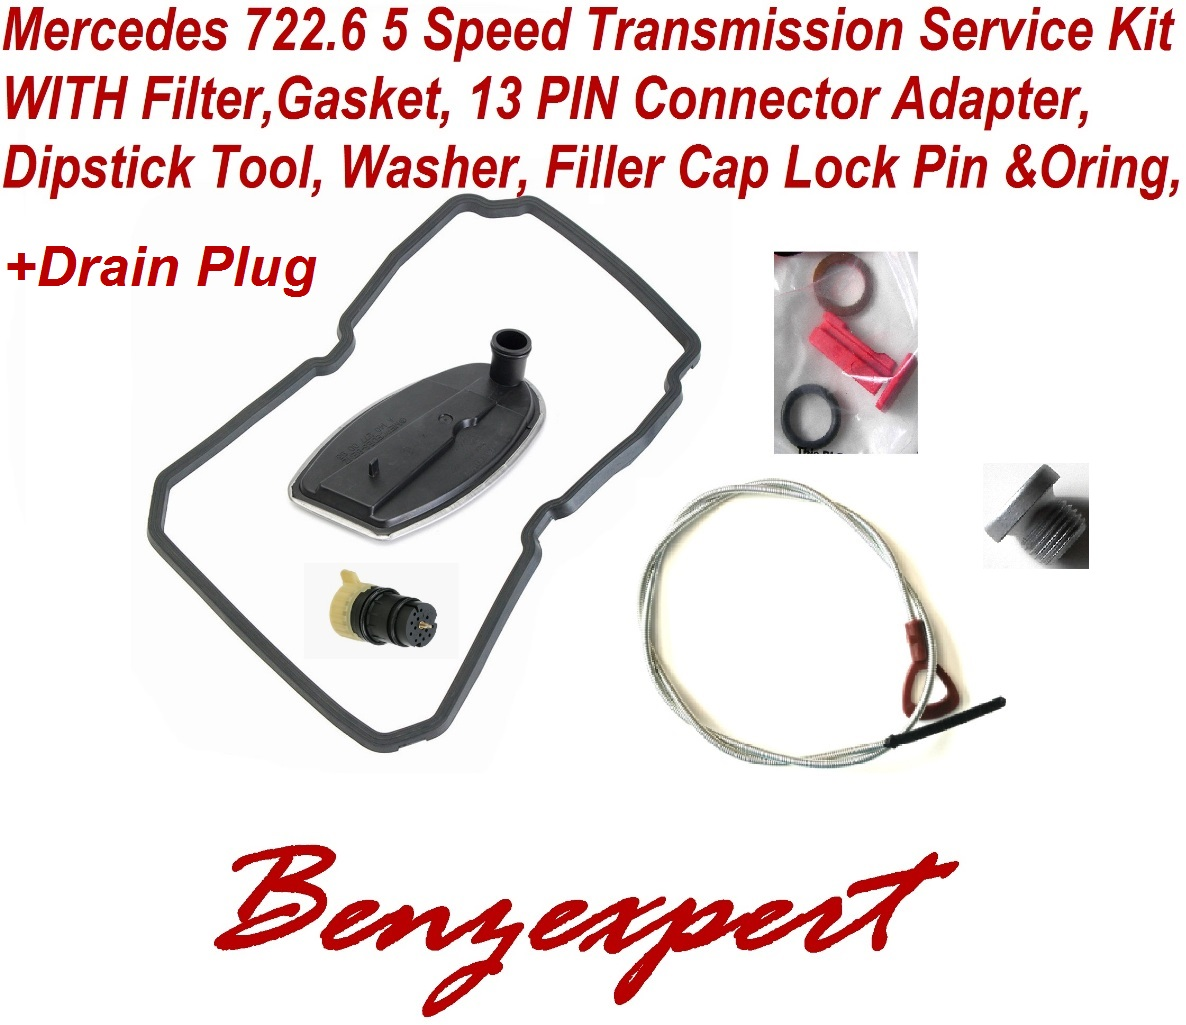 Aftermarket Mercedes 722.6 Service Kit with Dipstick